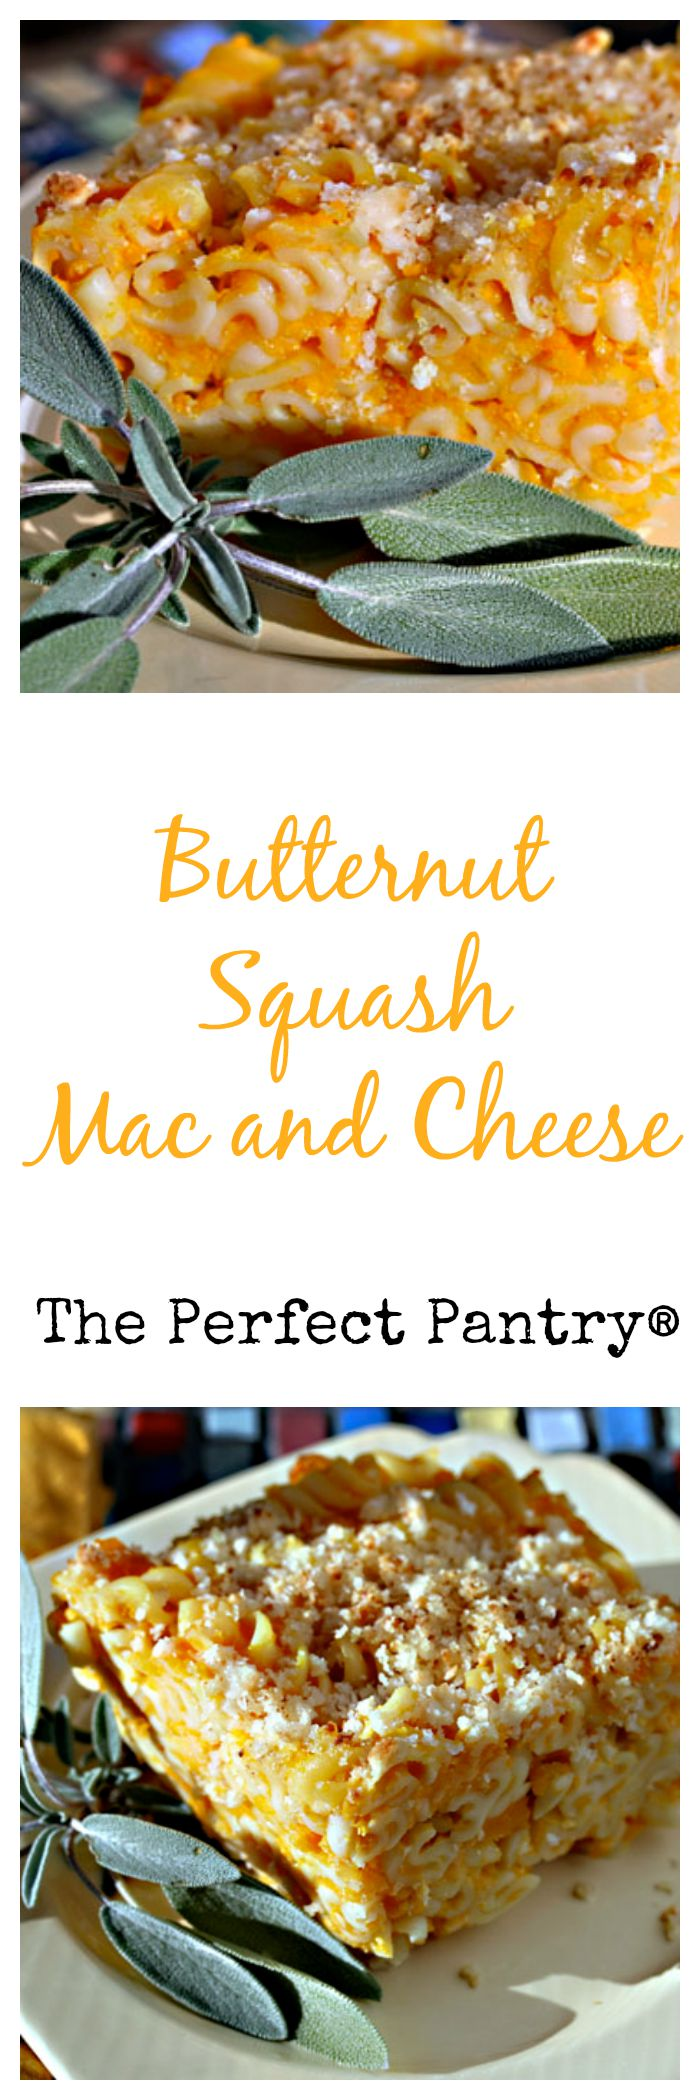 Butternut squash mac and cheese: the kids will love it!